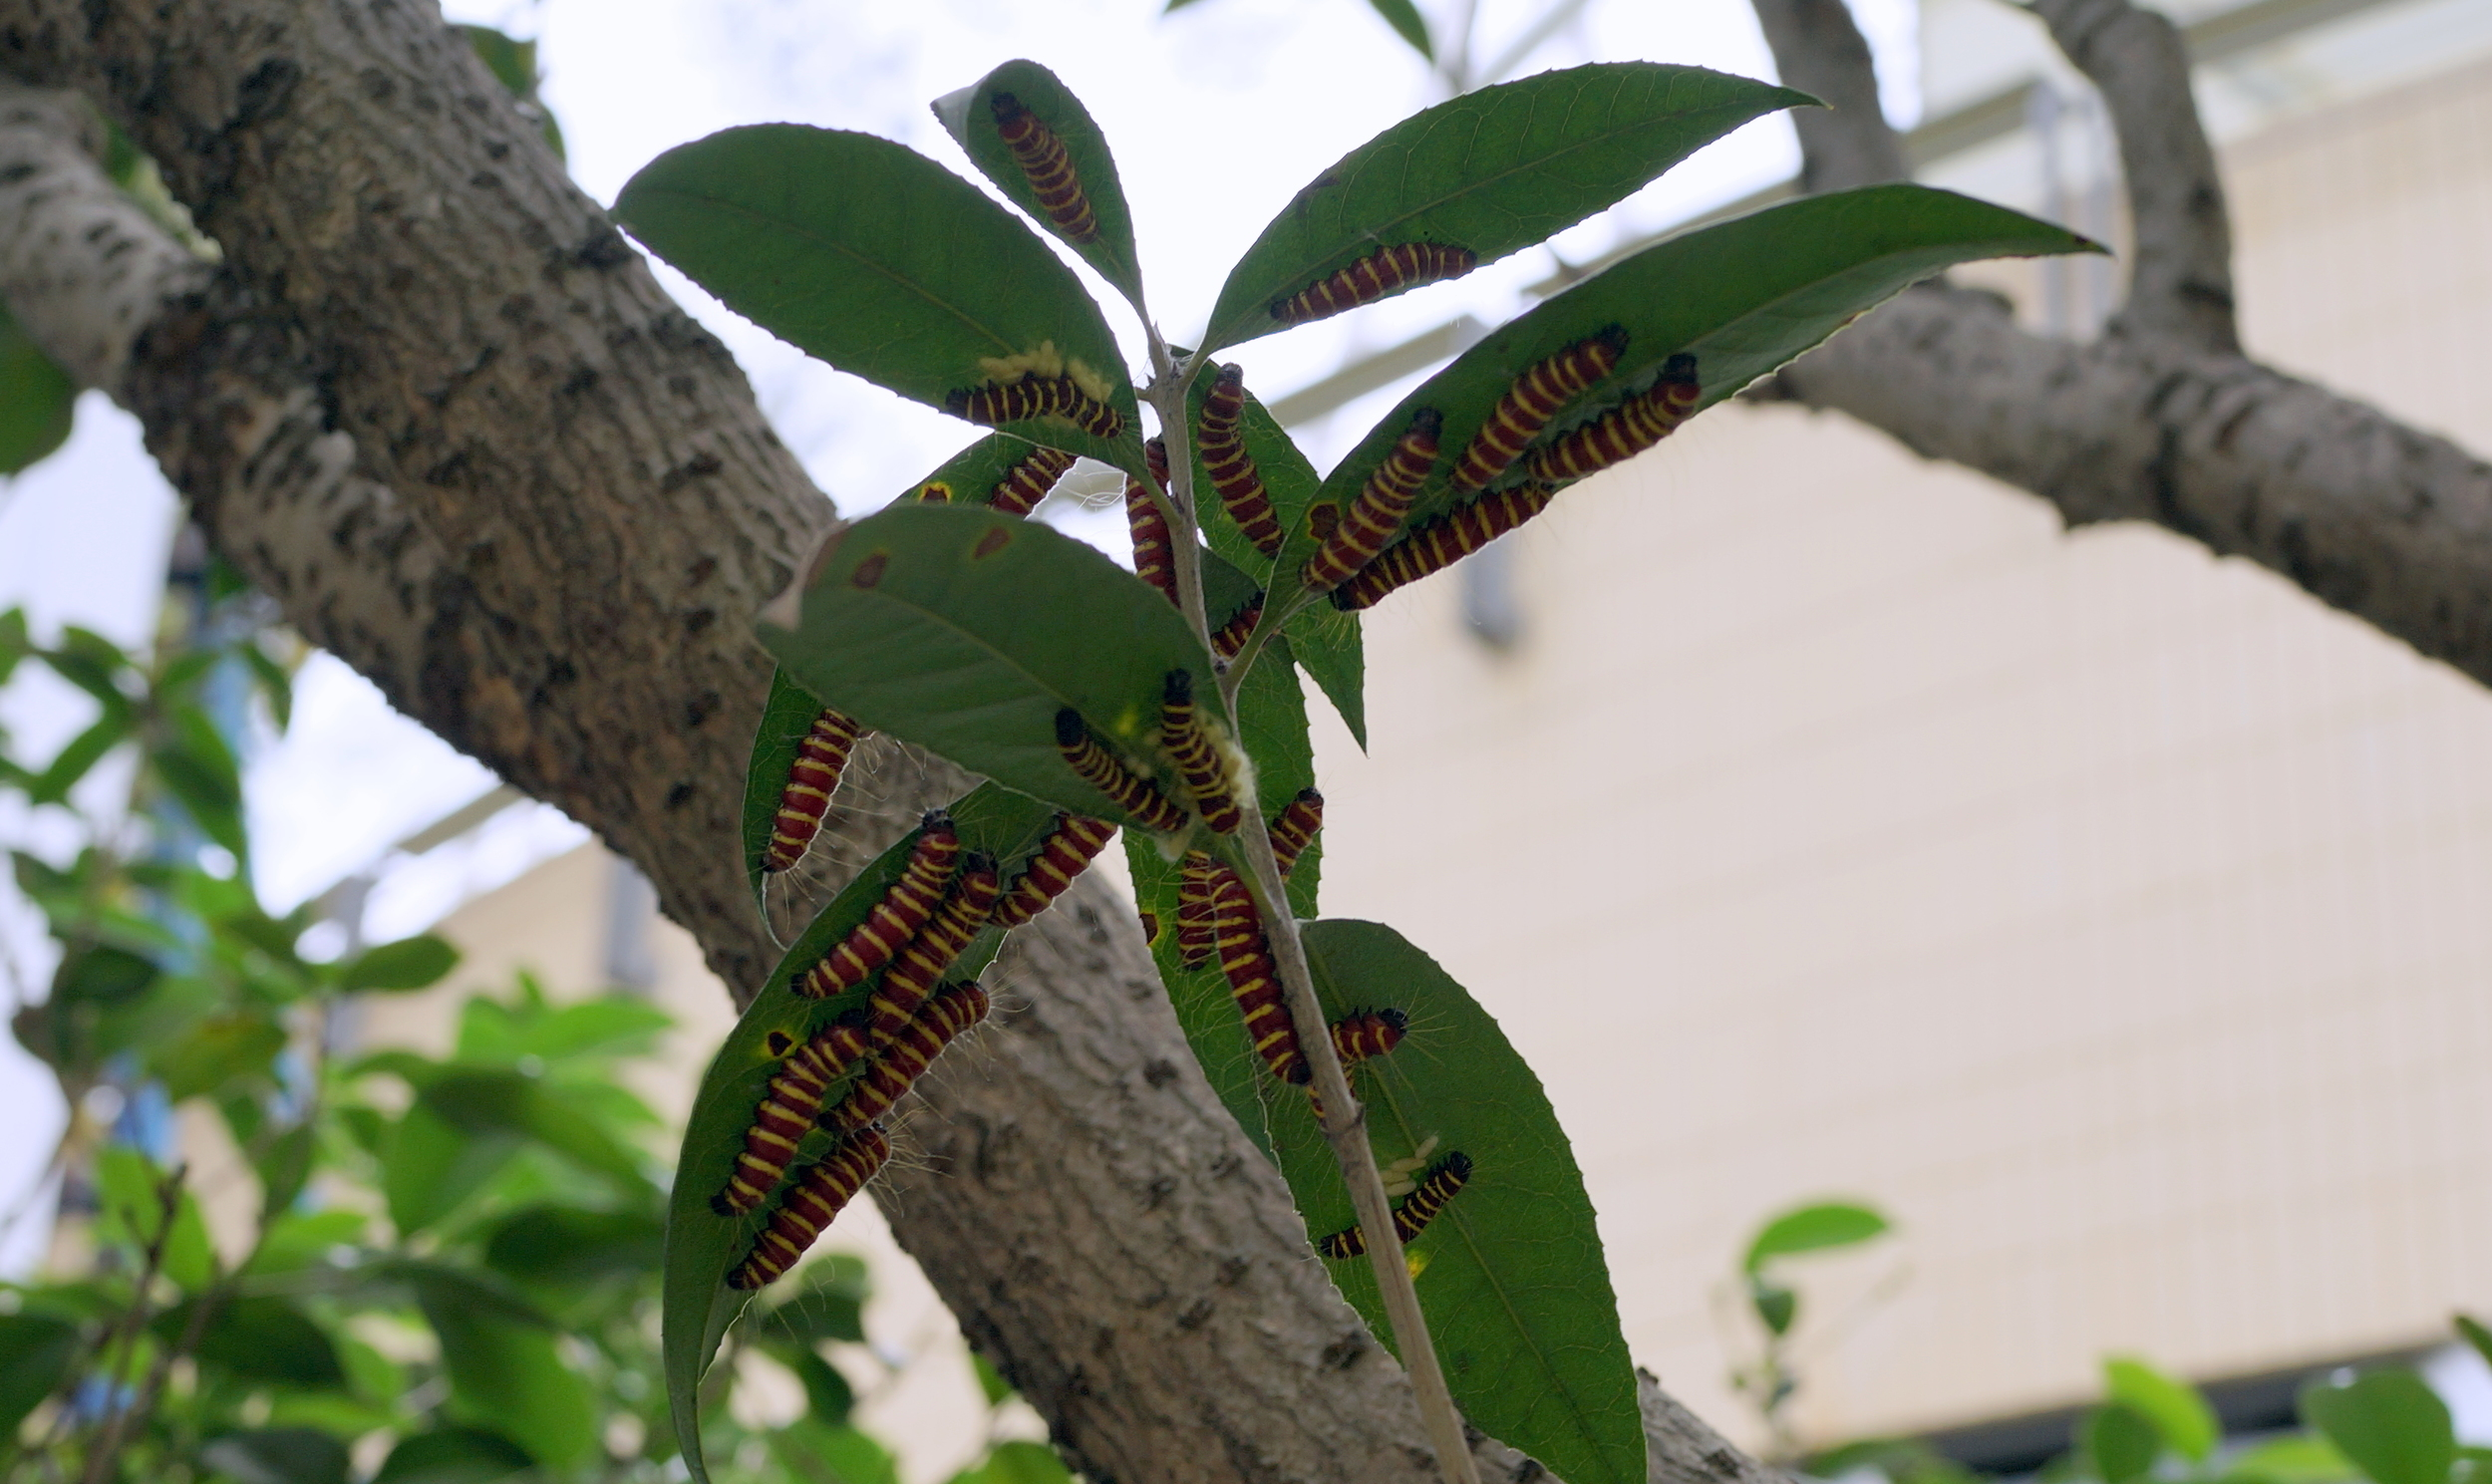 Lots of big hungry caterpillars eating leaves.....